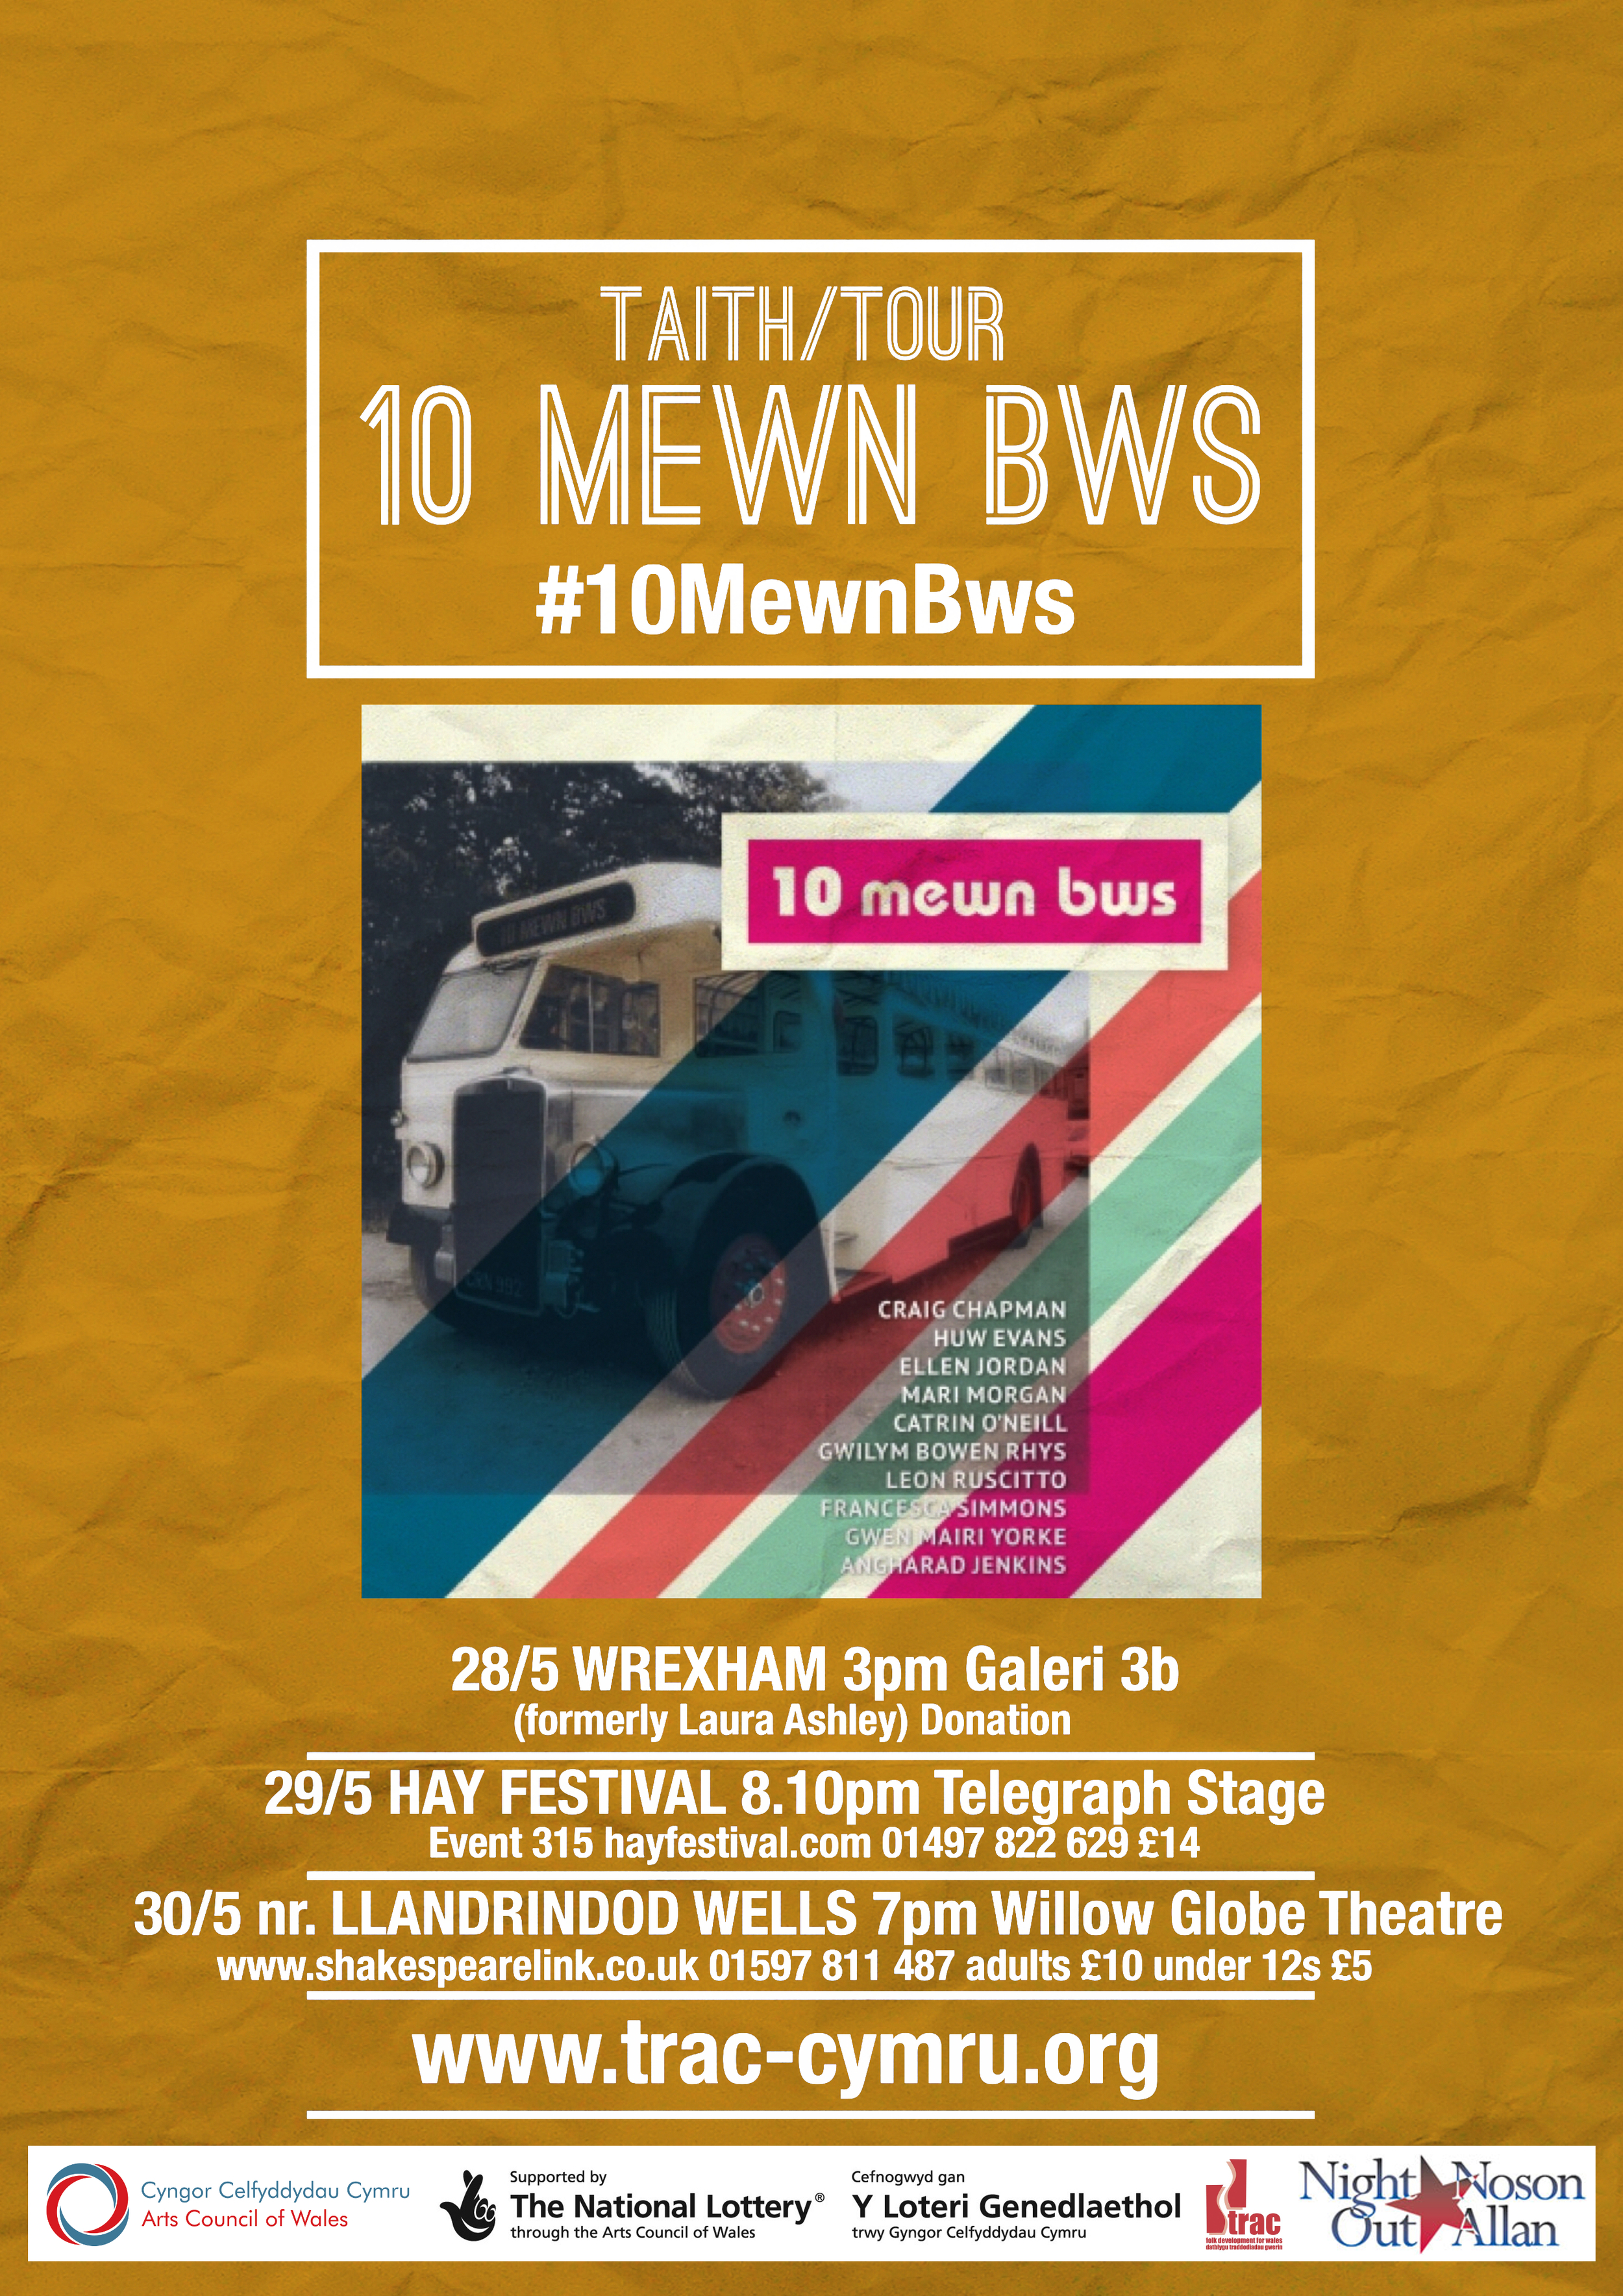 10 Mewn Bws Play Wrexham (and Hay and Willow Globe Theatre)